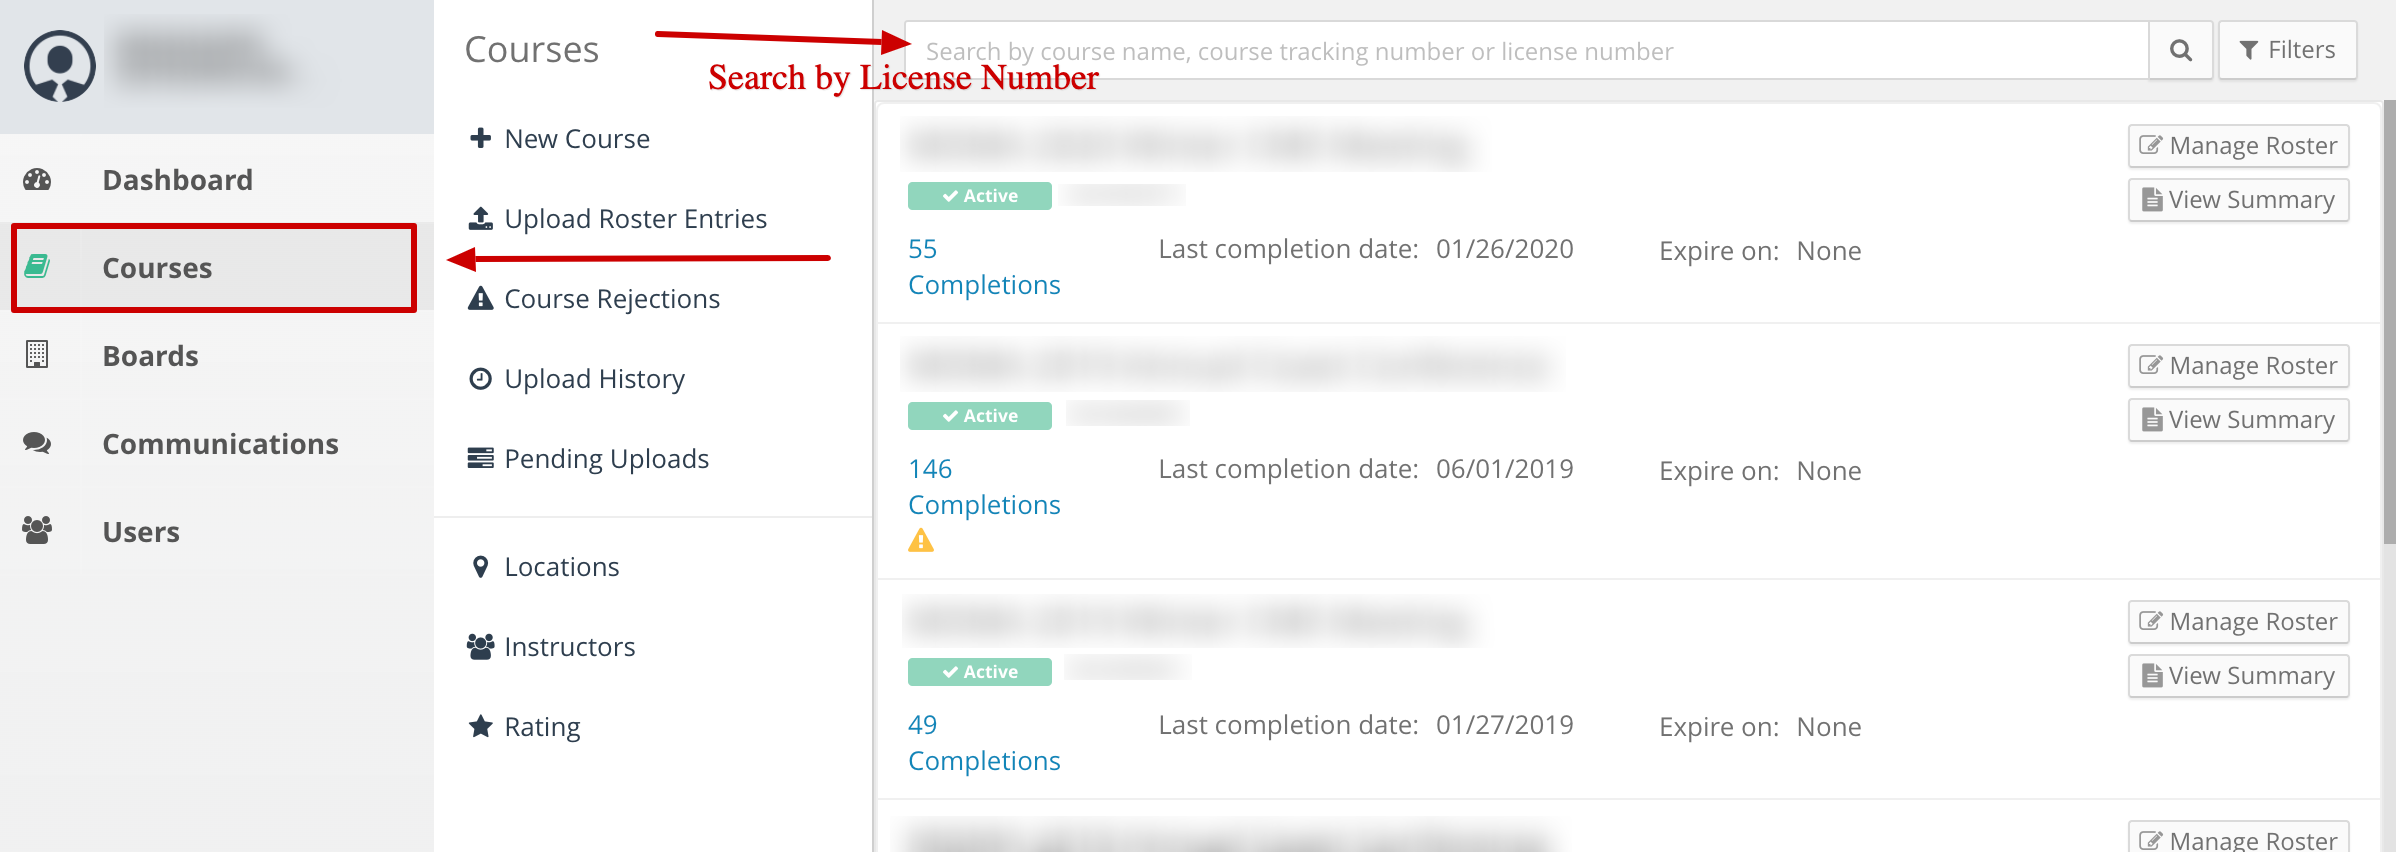 Screenshot of a provider account. An arrow points to the Courses link. Another arrow points to the search bar where you can search by license number.